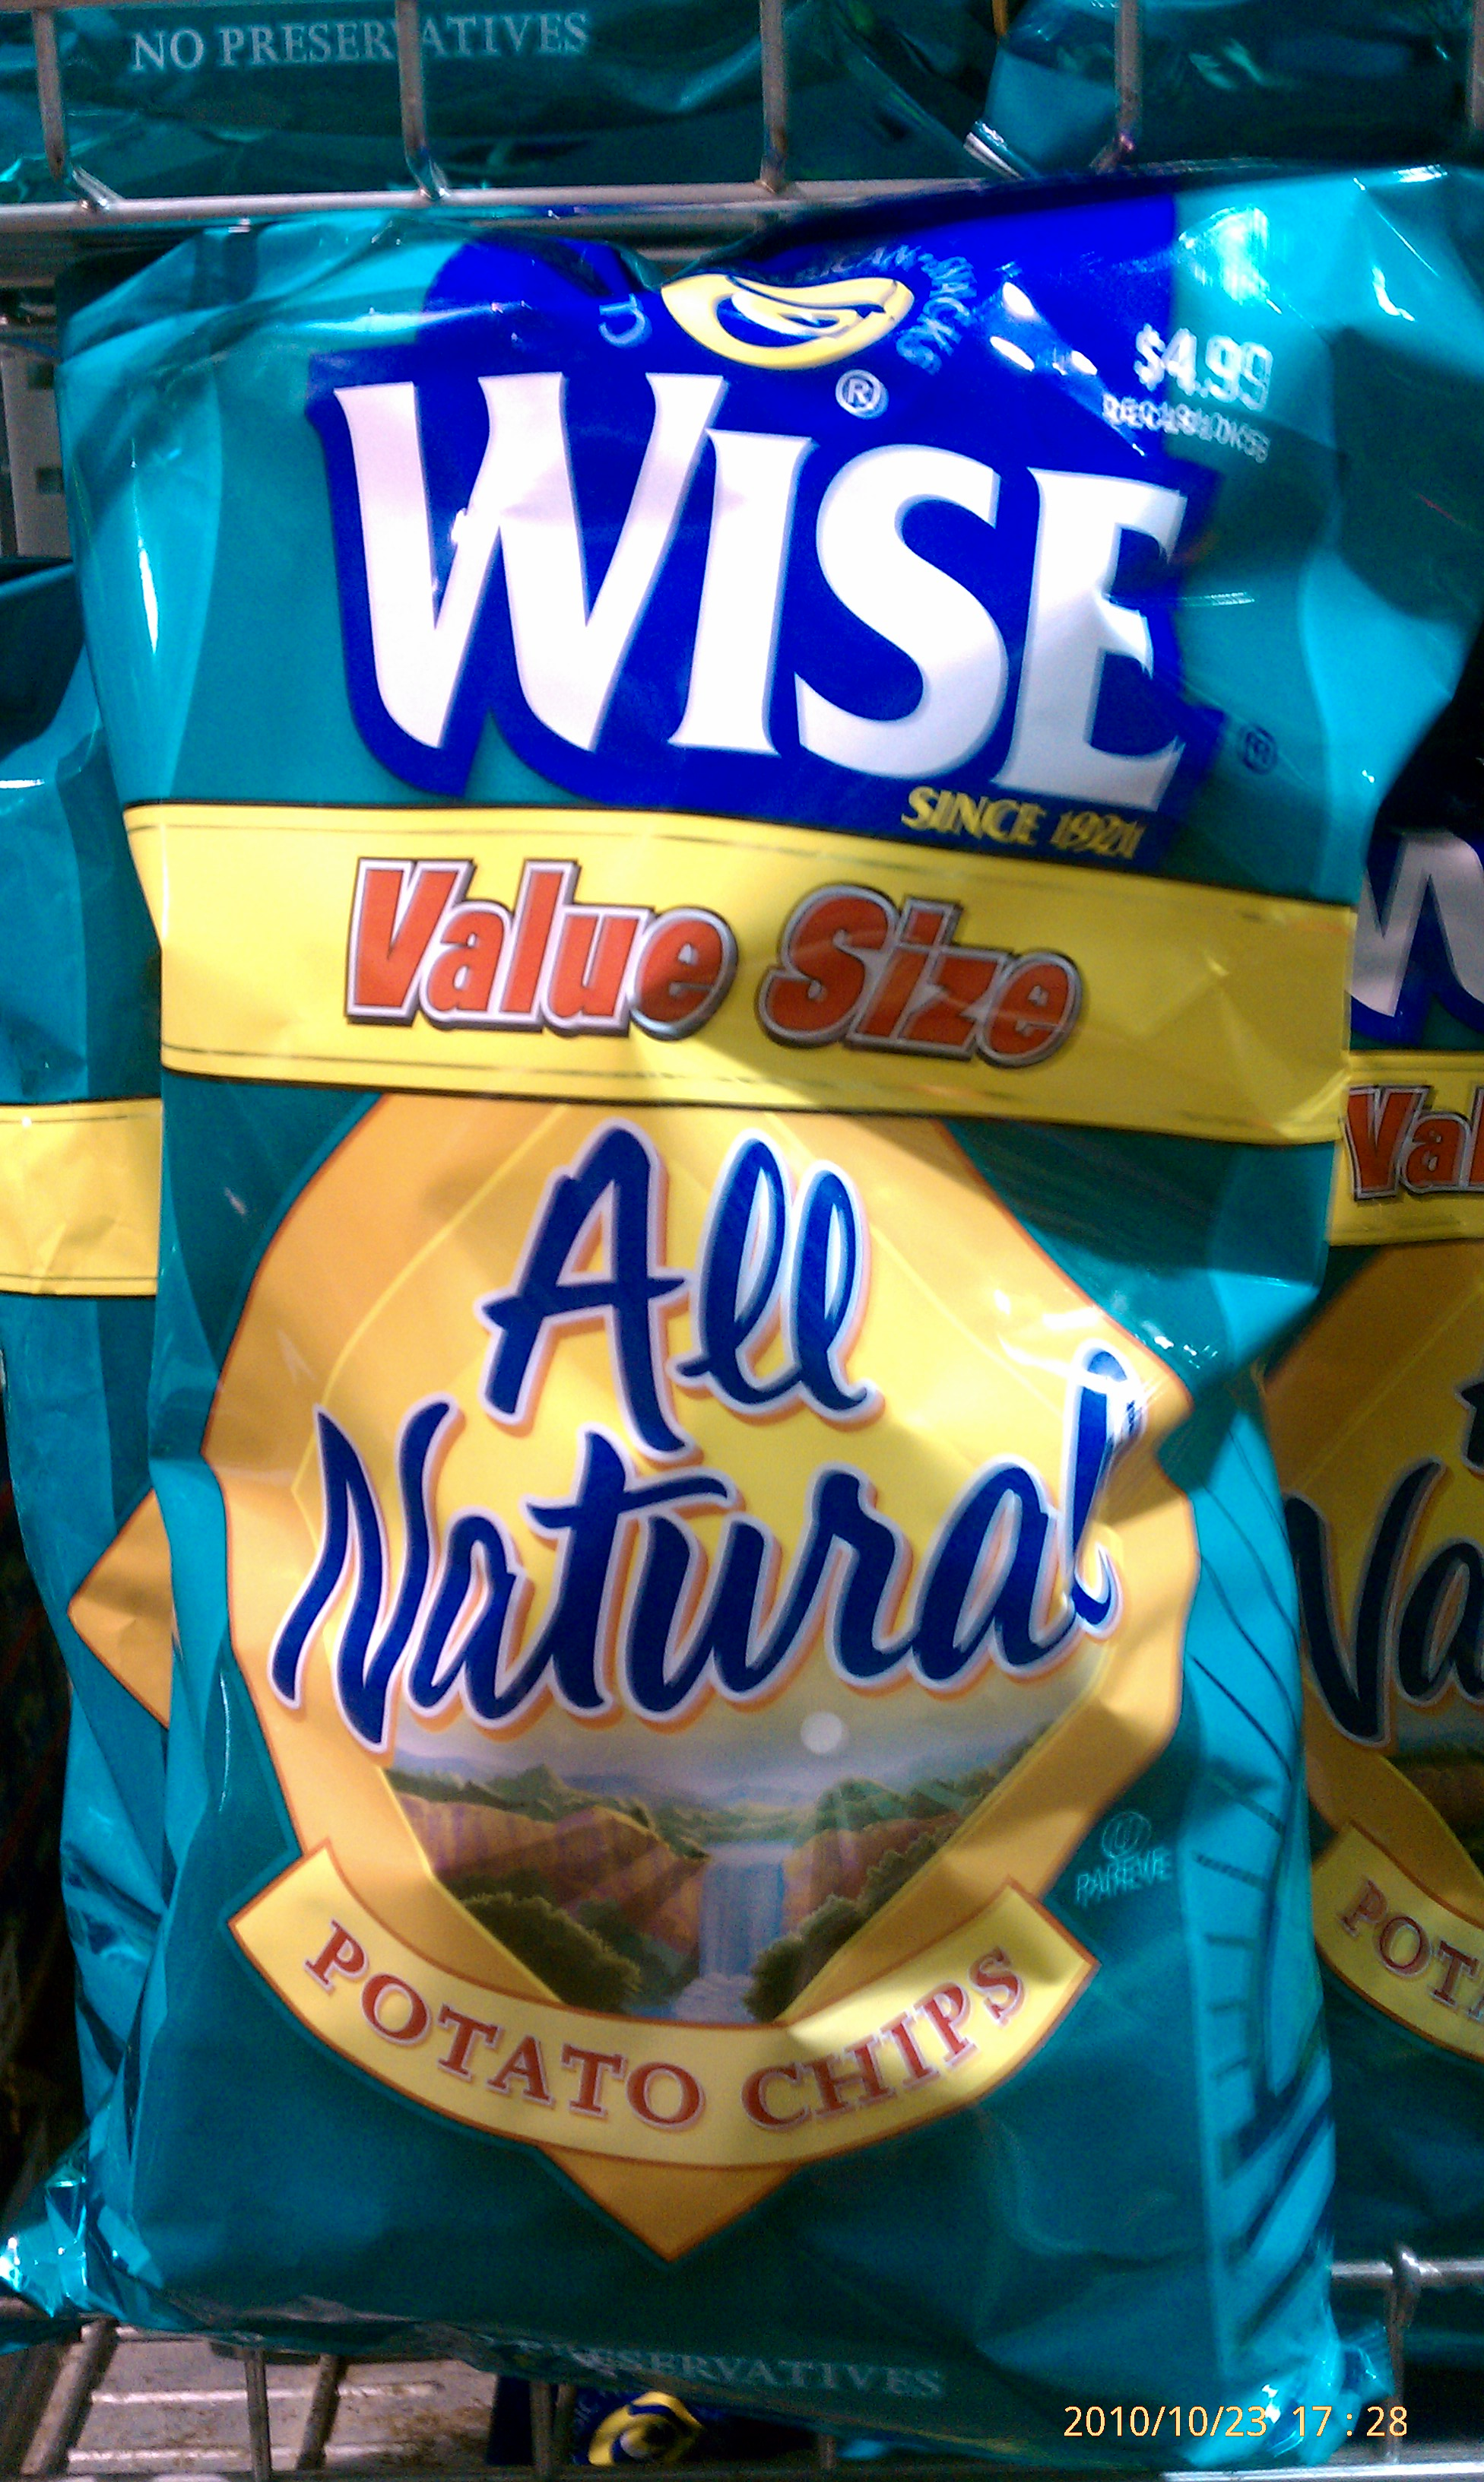 New york deli s wise potato chips order page